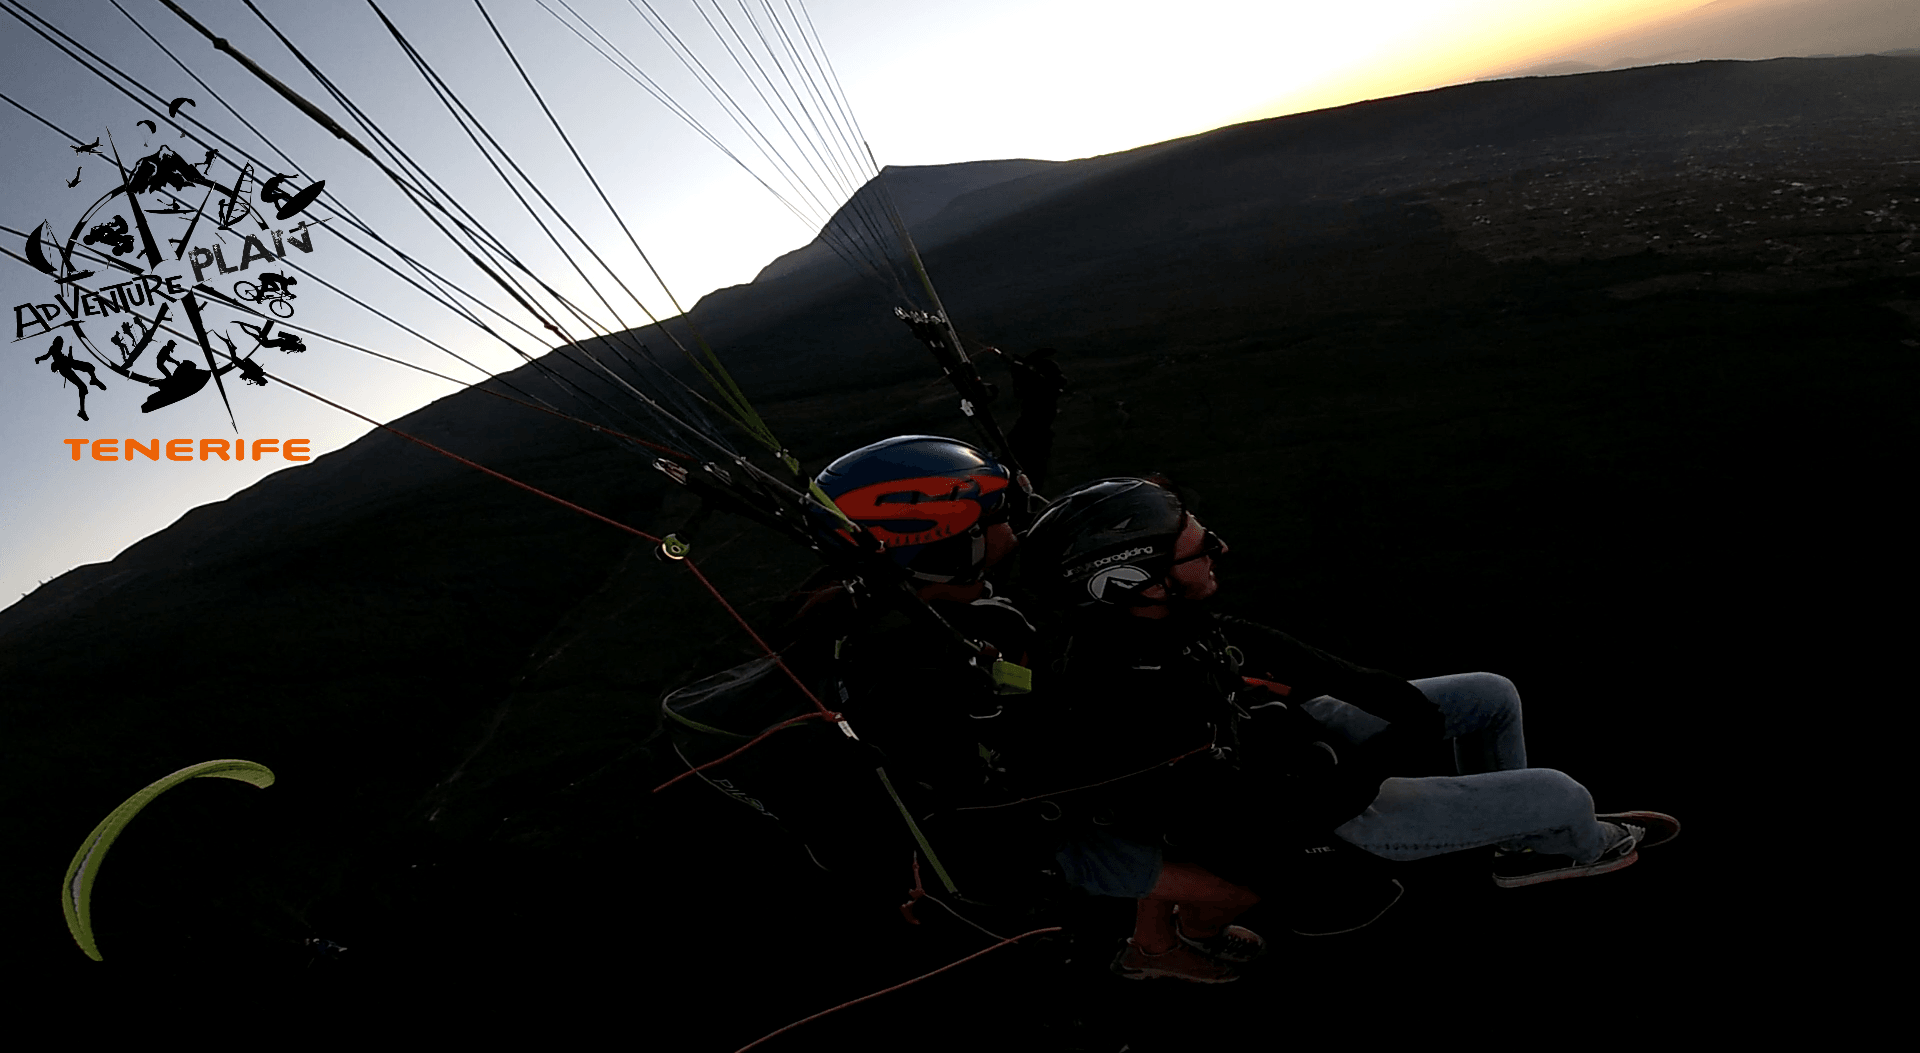 PARAGLIDING TENERIFE - FLY PARAGLIDING TENERIFE - ADVENTURE PLAN TENERIFE PARAGLIDING - ADVENTURE TENERIFE PARAGLIDING _ PARAGLIDING LESSONS TENERIFE - PARAGLIDING ADEJE - PARAGLIDING TEIDE - PARAPENDIO TENERIFE -PARAPENDIO TANDEM TENERIFE - ACROBATIC PARAGLIDING TENERIFE - PARAPENTE ACROBATICO TENERIFE - AVENTURAS EN TENERIFE   - PARAPENDIO IZAÑA SUNSET, PARAPENDIO Tenerife EL TEIDE SUNSET, HIKE AND FLY EL TEIDE BY NIGHT